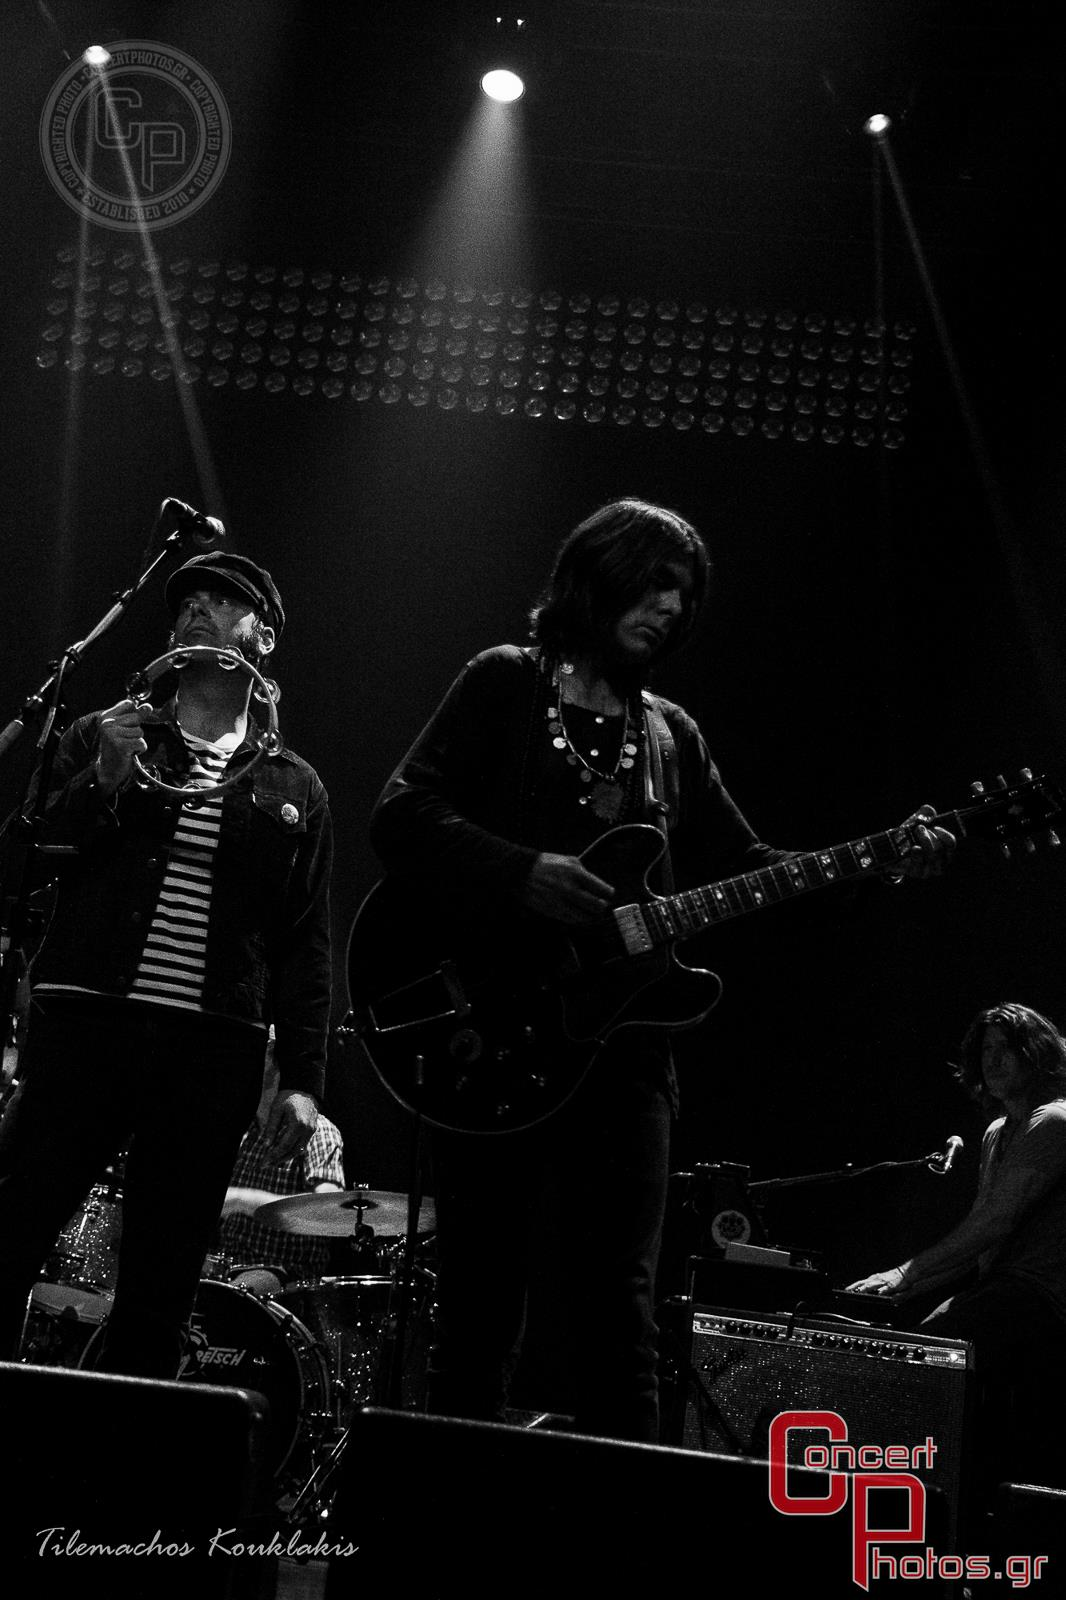 Brian Jonestown Massacre + The Velvoids-Brian Jonestown Massacre photographer:  - IMG_6196